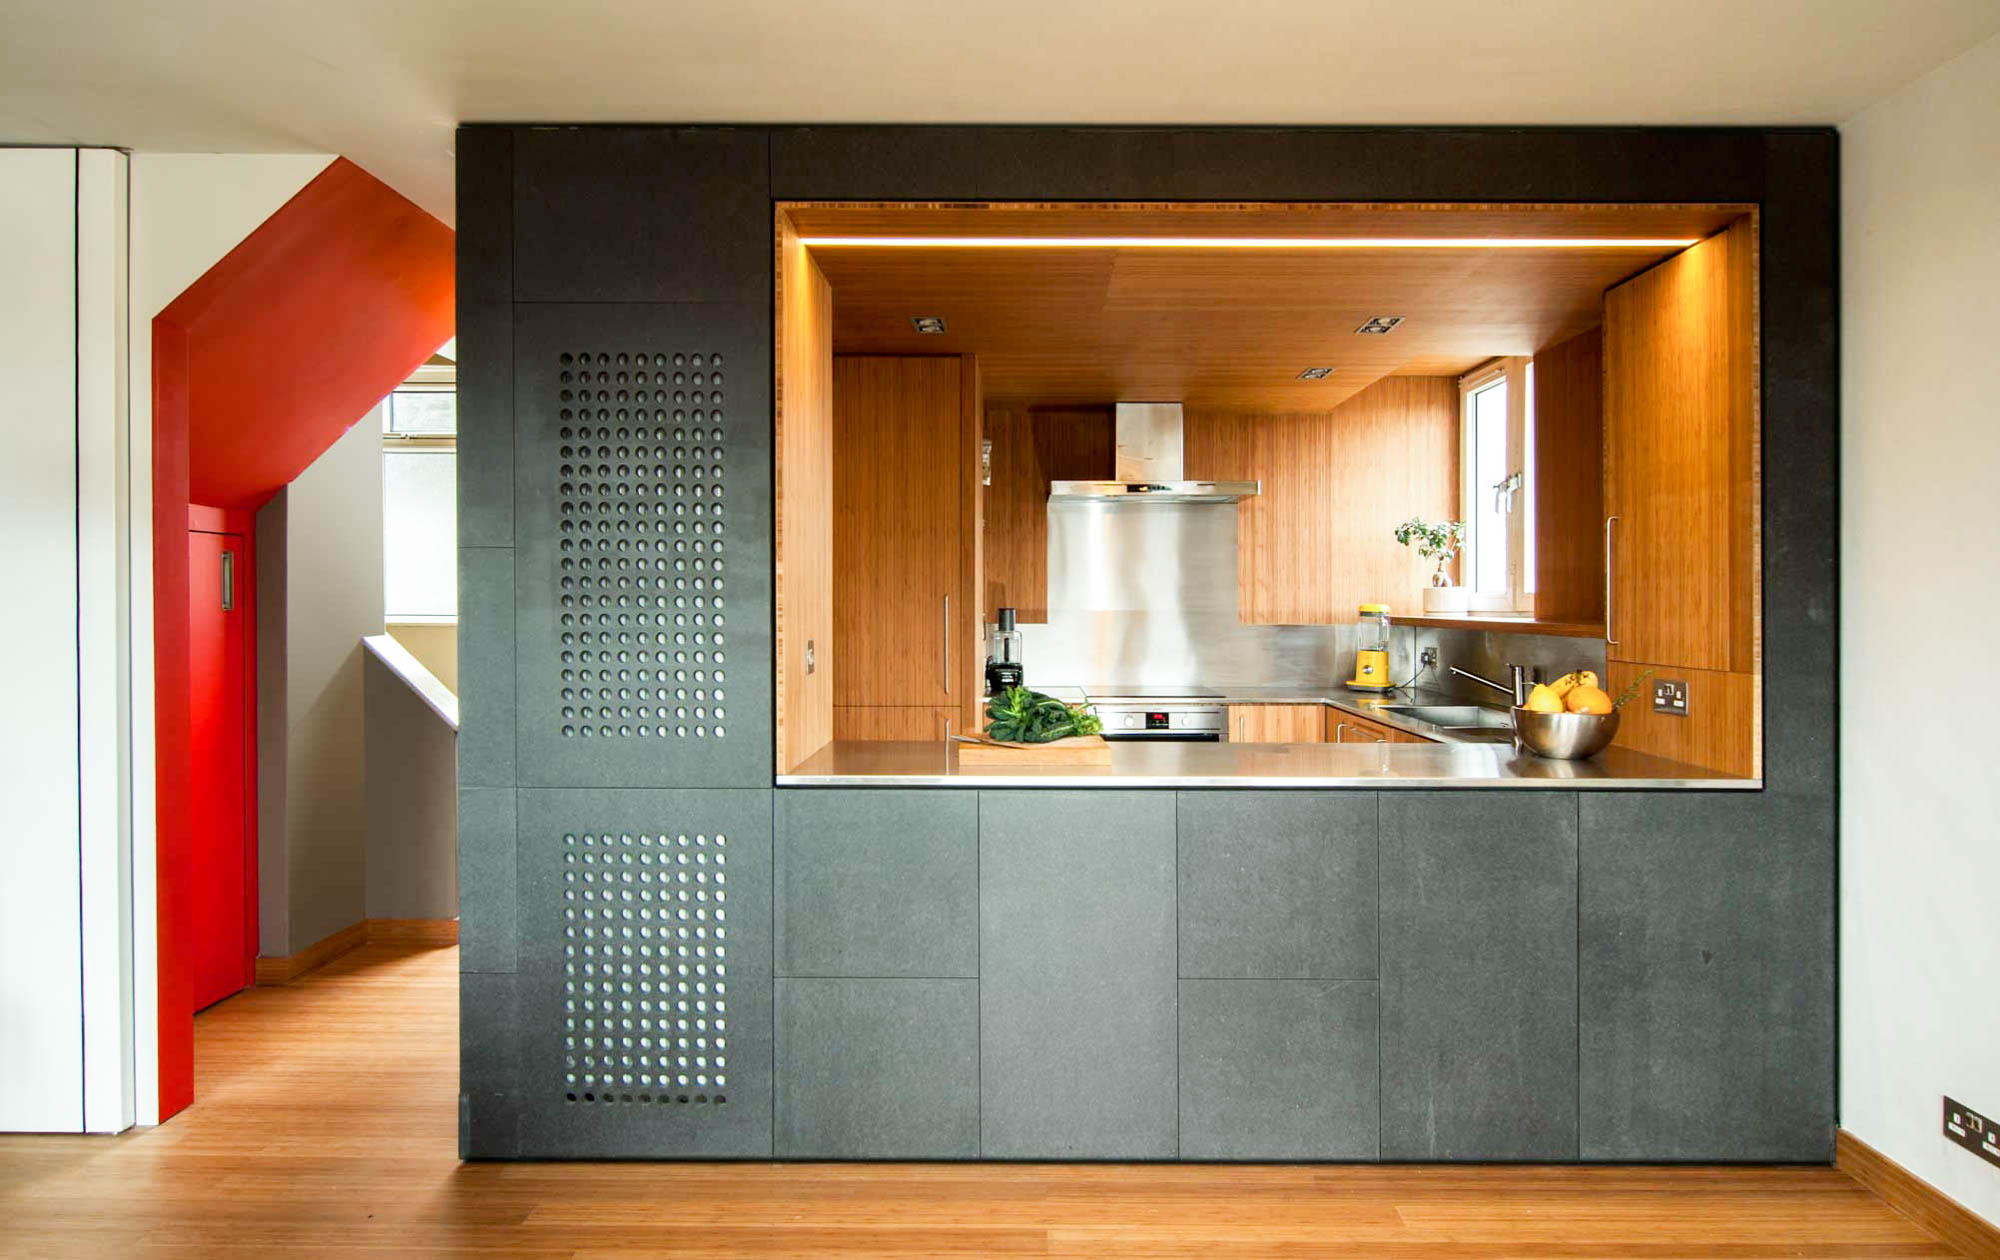 A kitchen pod consisting of contrasting materials and colours.